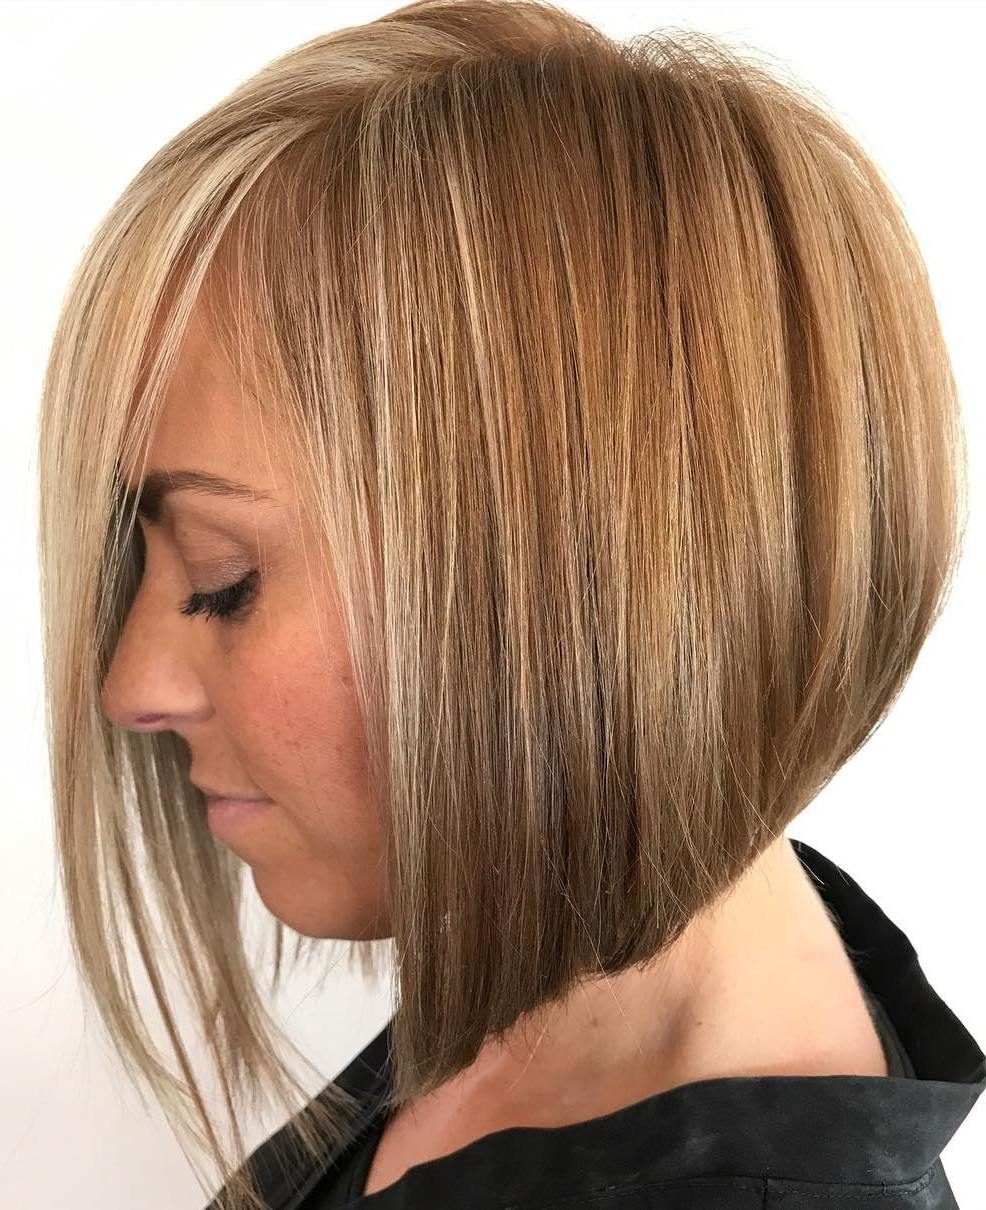 Caramel Bronde Angled Bob for Fine Hair with Face-Framing Strands